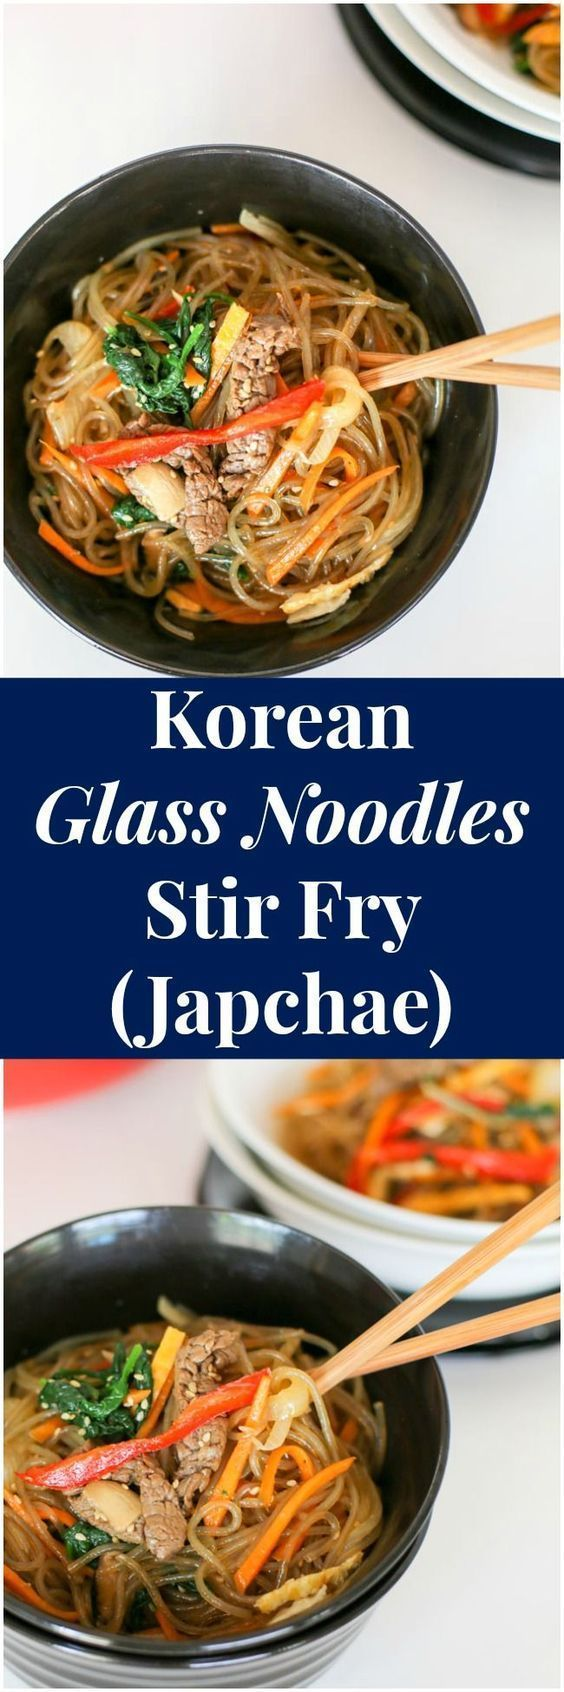 The best and the most comprehensive Korean Glass Noodle Stir Fry (Japchae) recipe! It's colourful and flavourful. Impress your guests! | MyKoreanKitchen.com